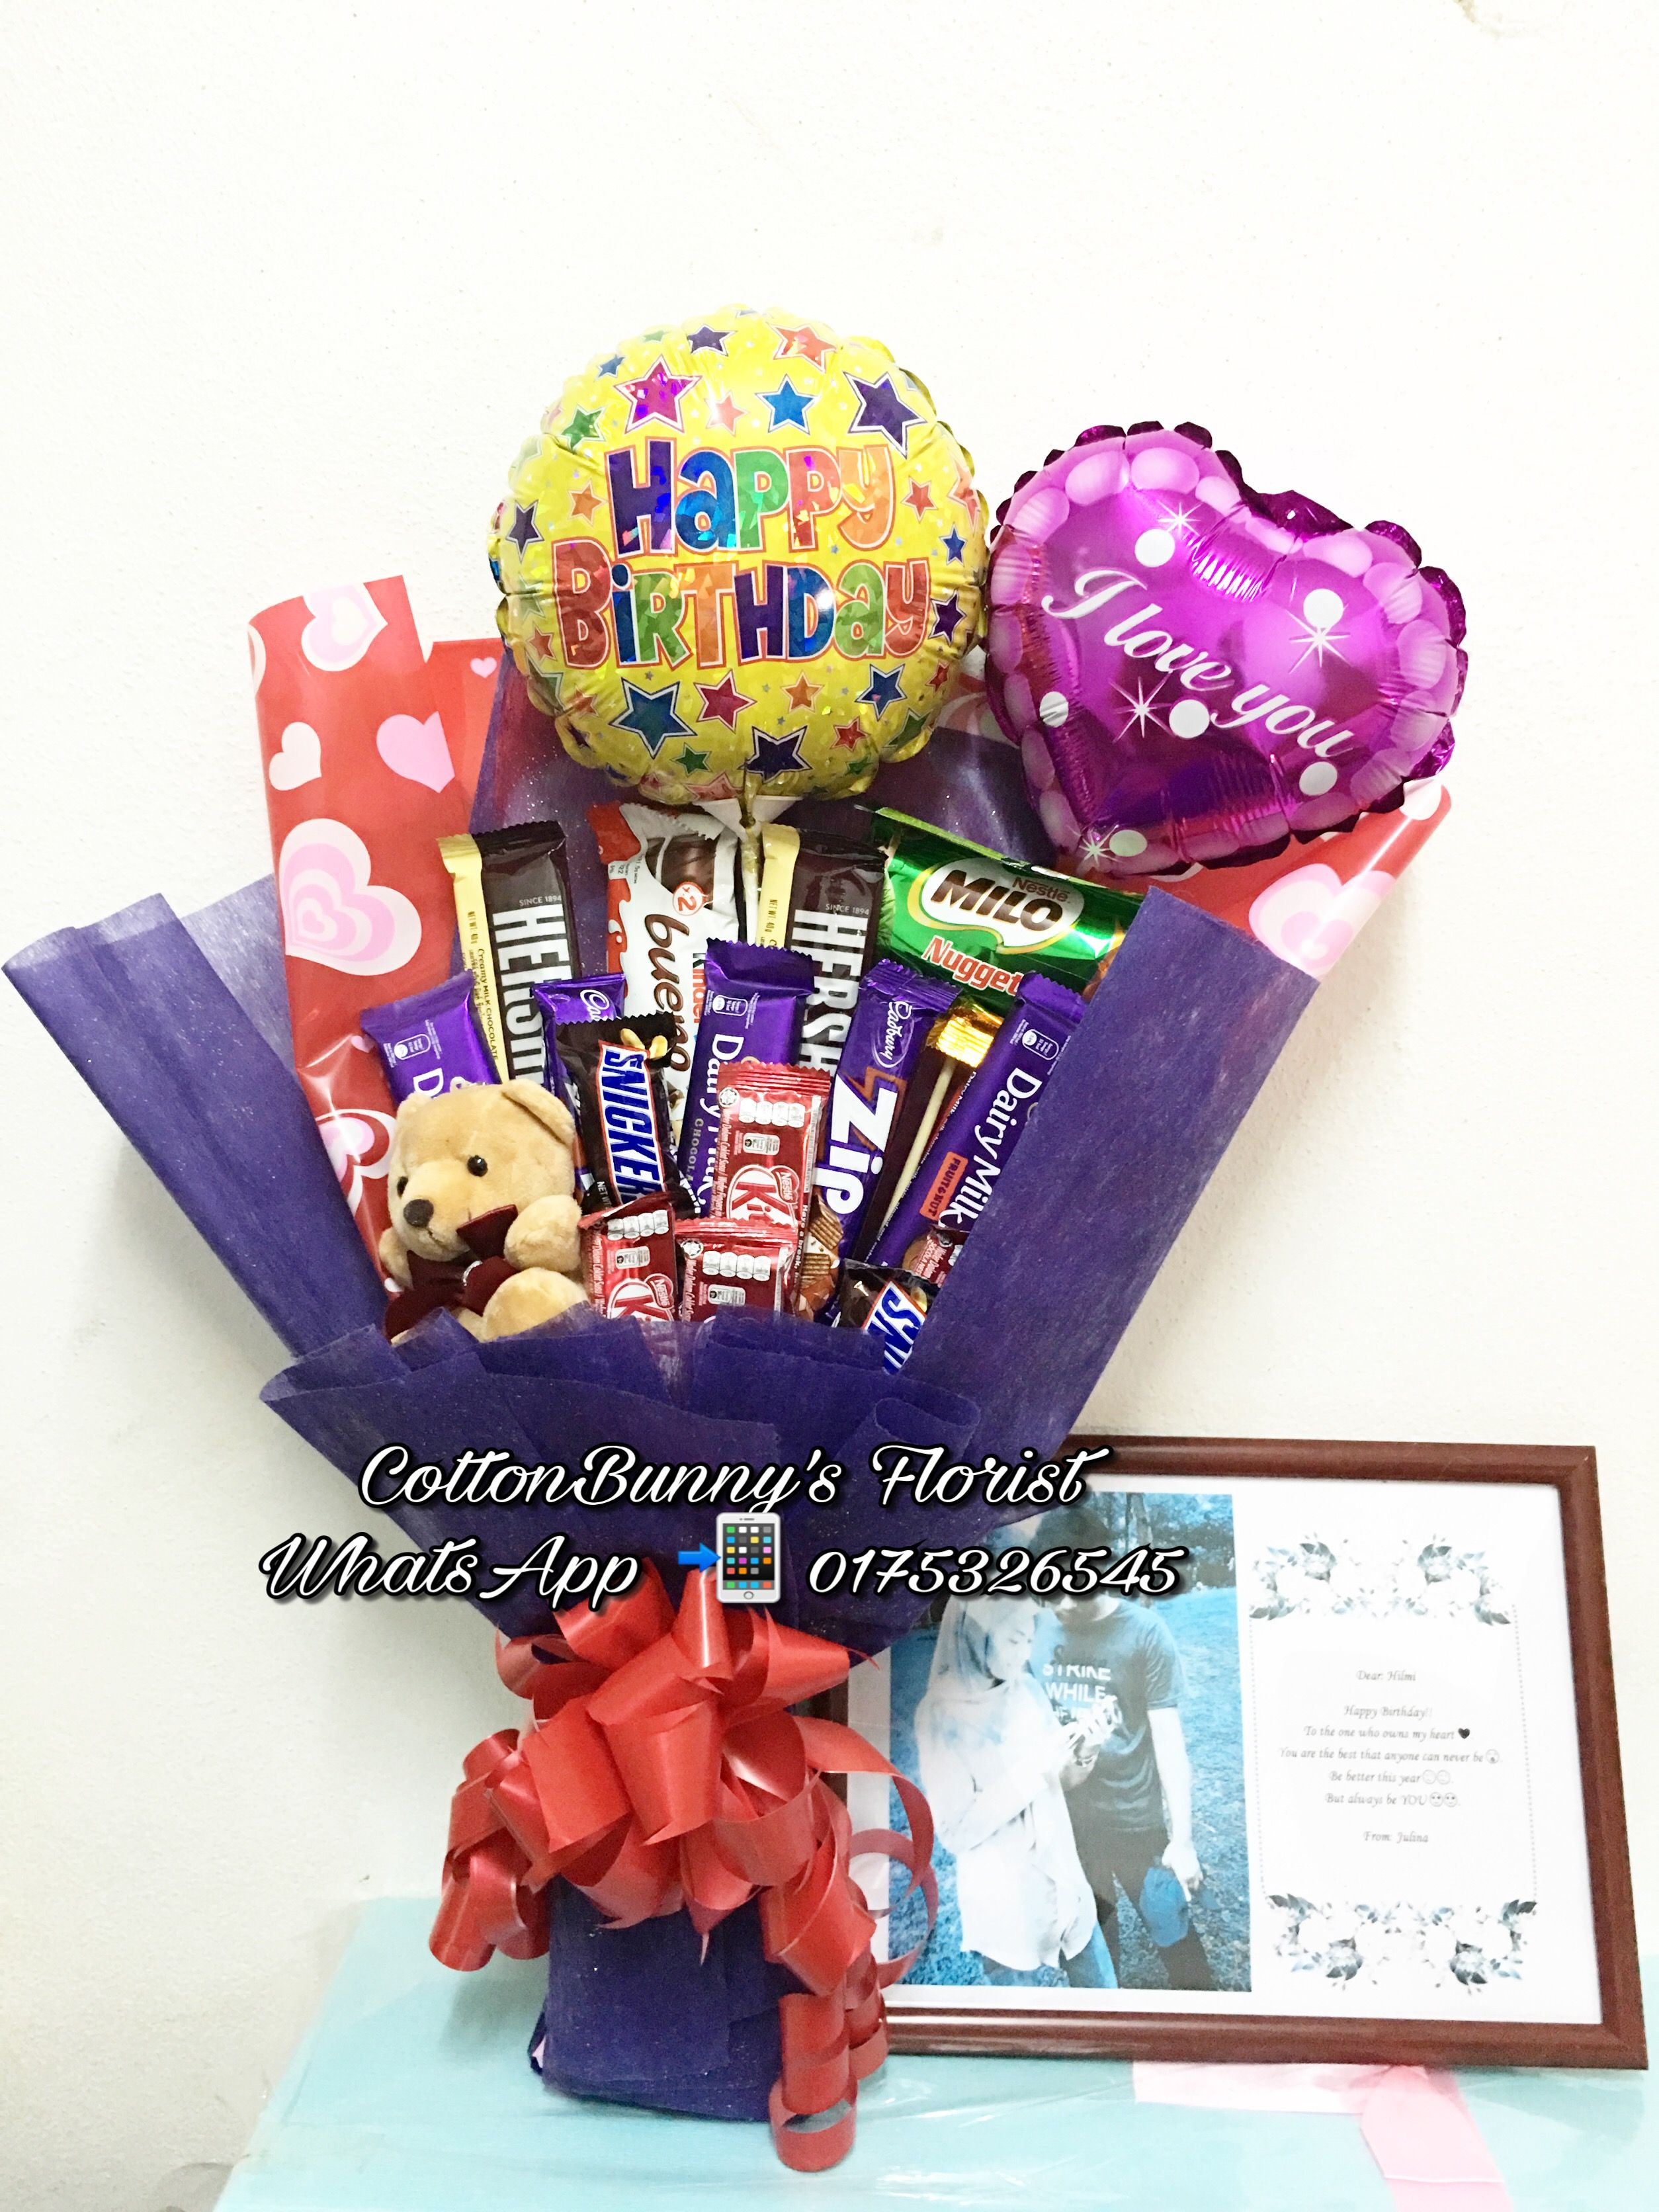 Chocolate Bouquet Kitkat Ferrerorocher Delivery Penang Kedah Perlis Kl Malaysia Facebook ScarletHeart Florist And Gifts Instagram